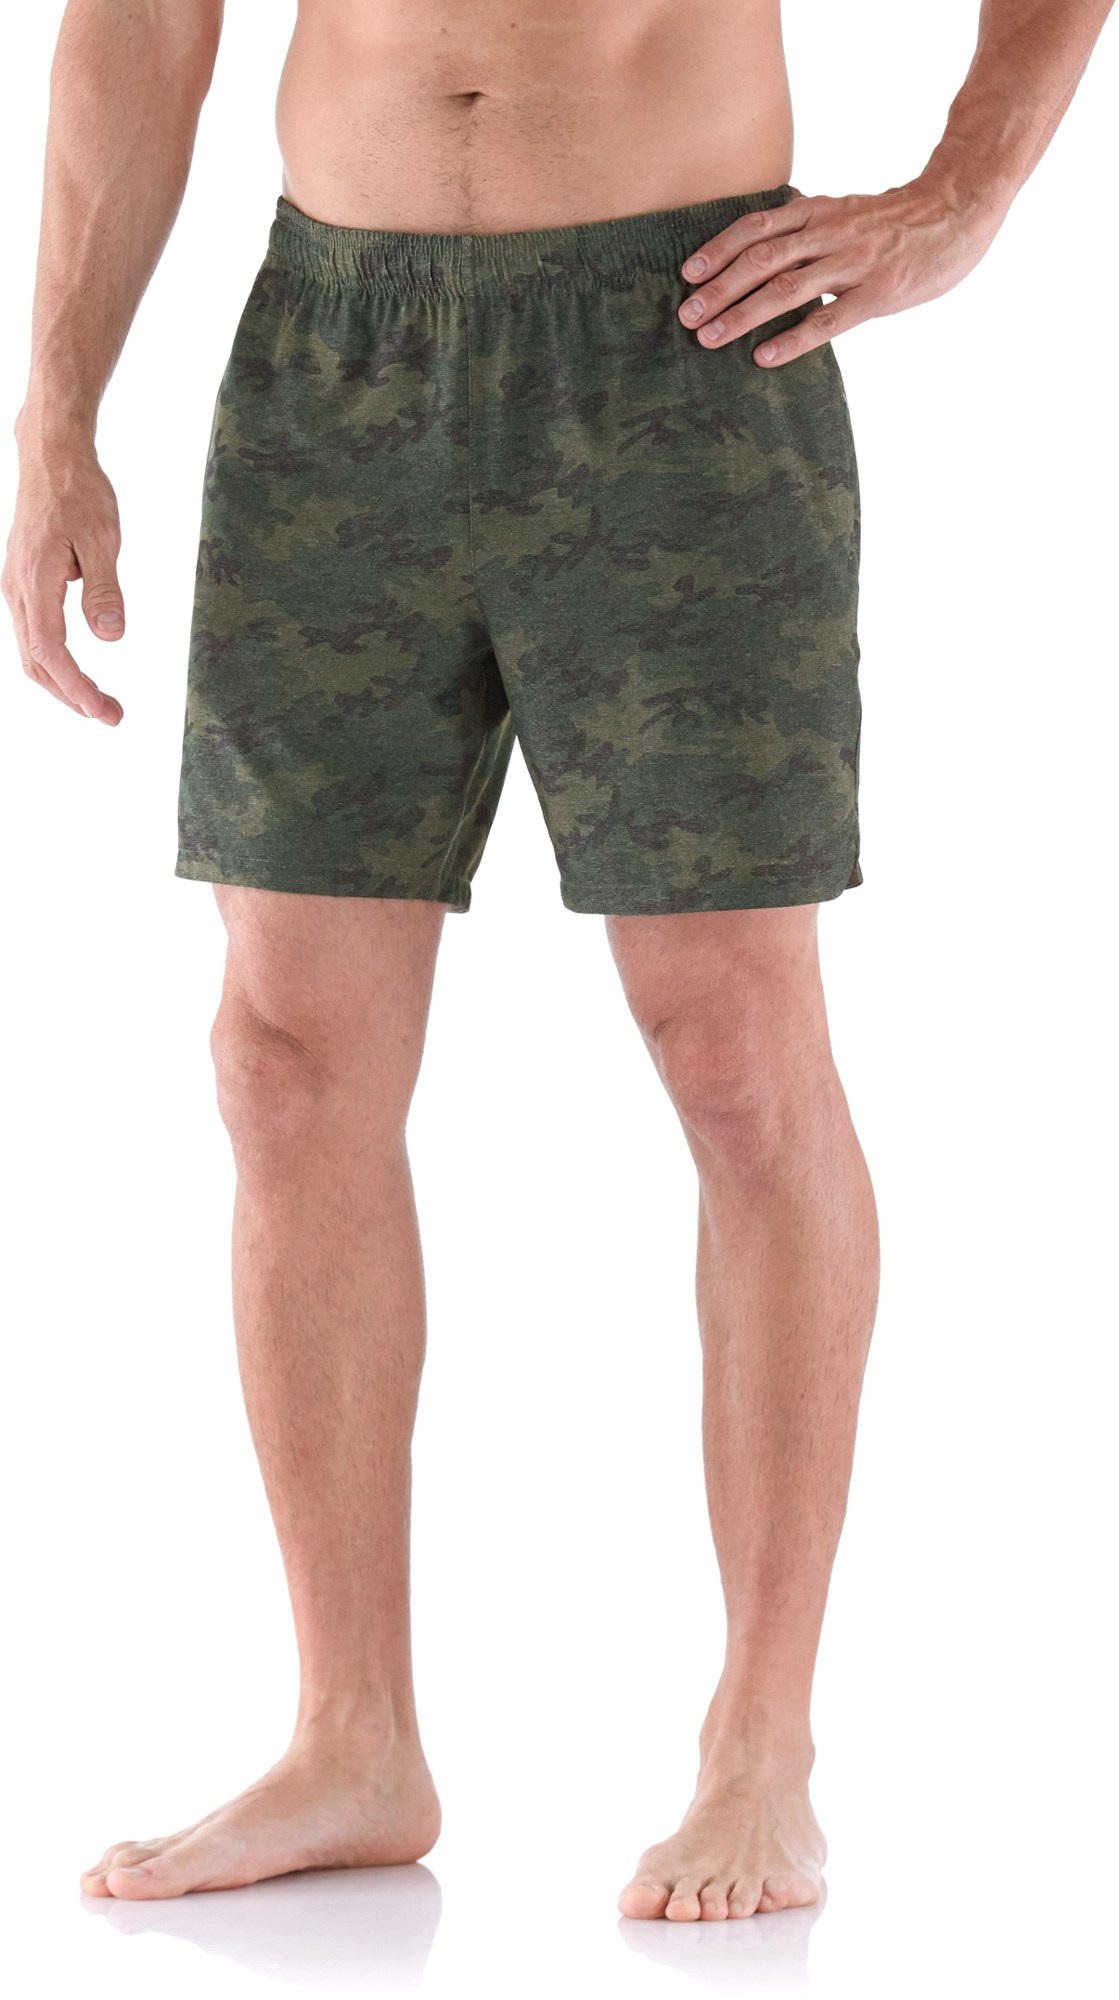 RHONE Guru Shorts - Men's 7